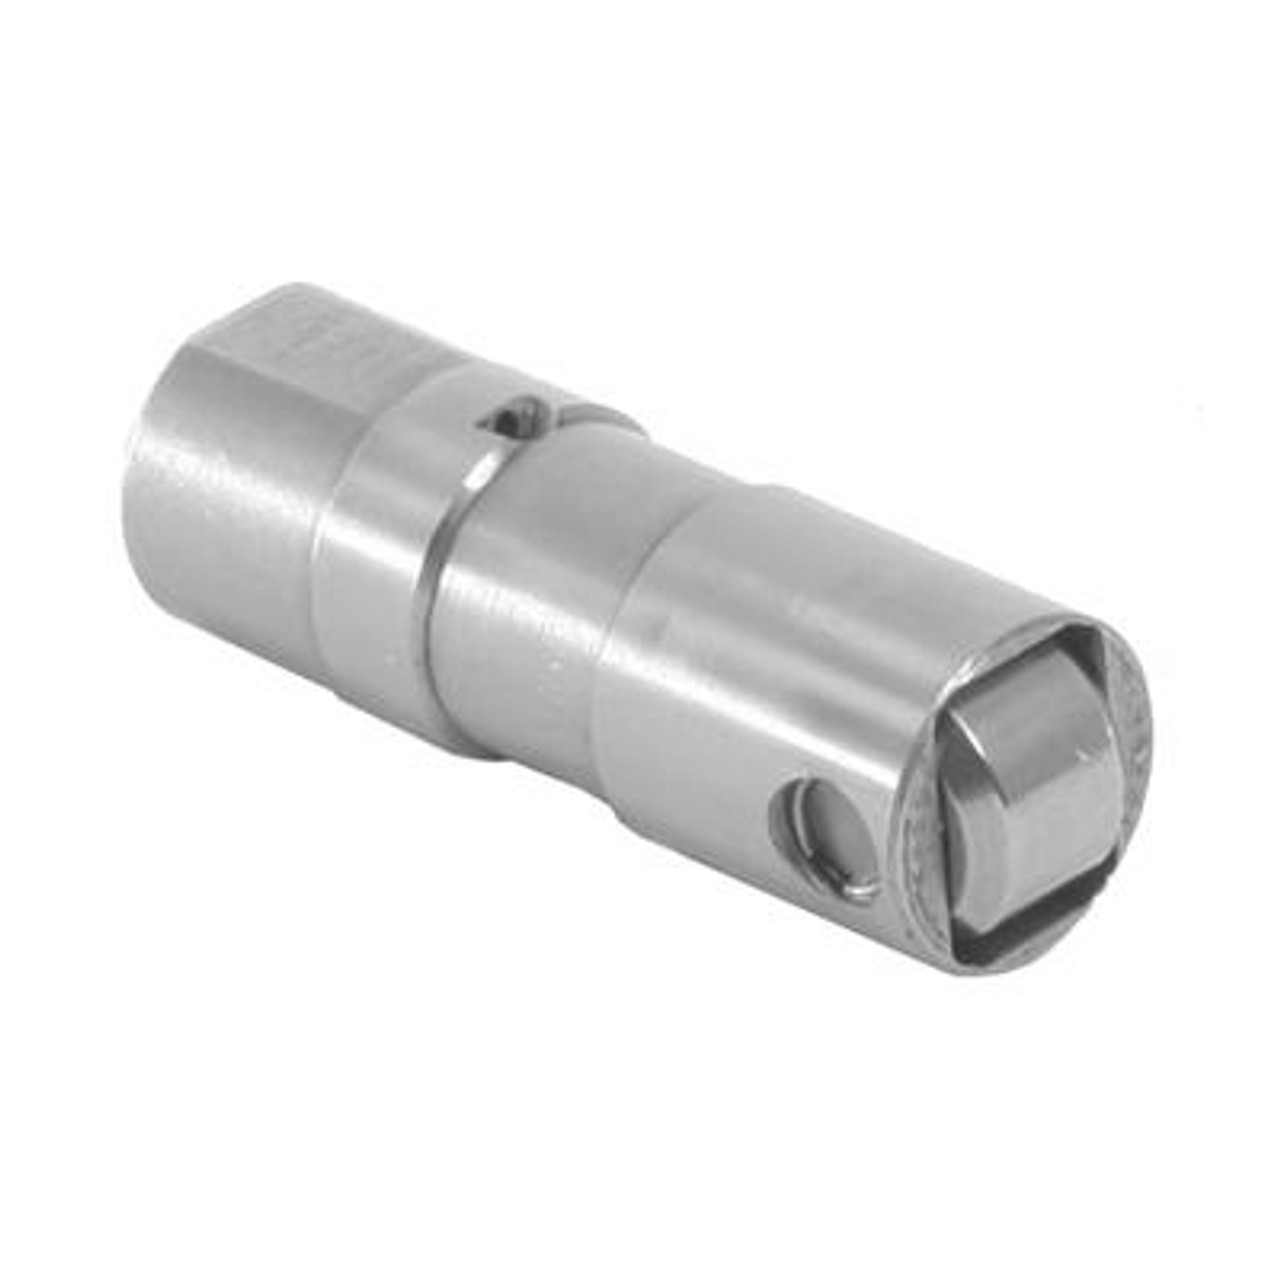 Howards Cams OE-Style Performance Hydraulic Roller Lifters 91113